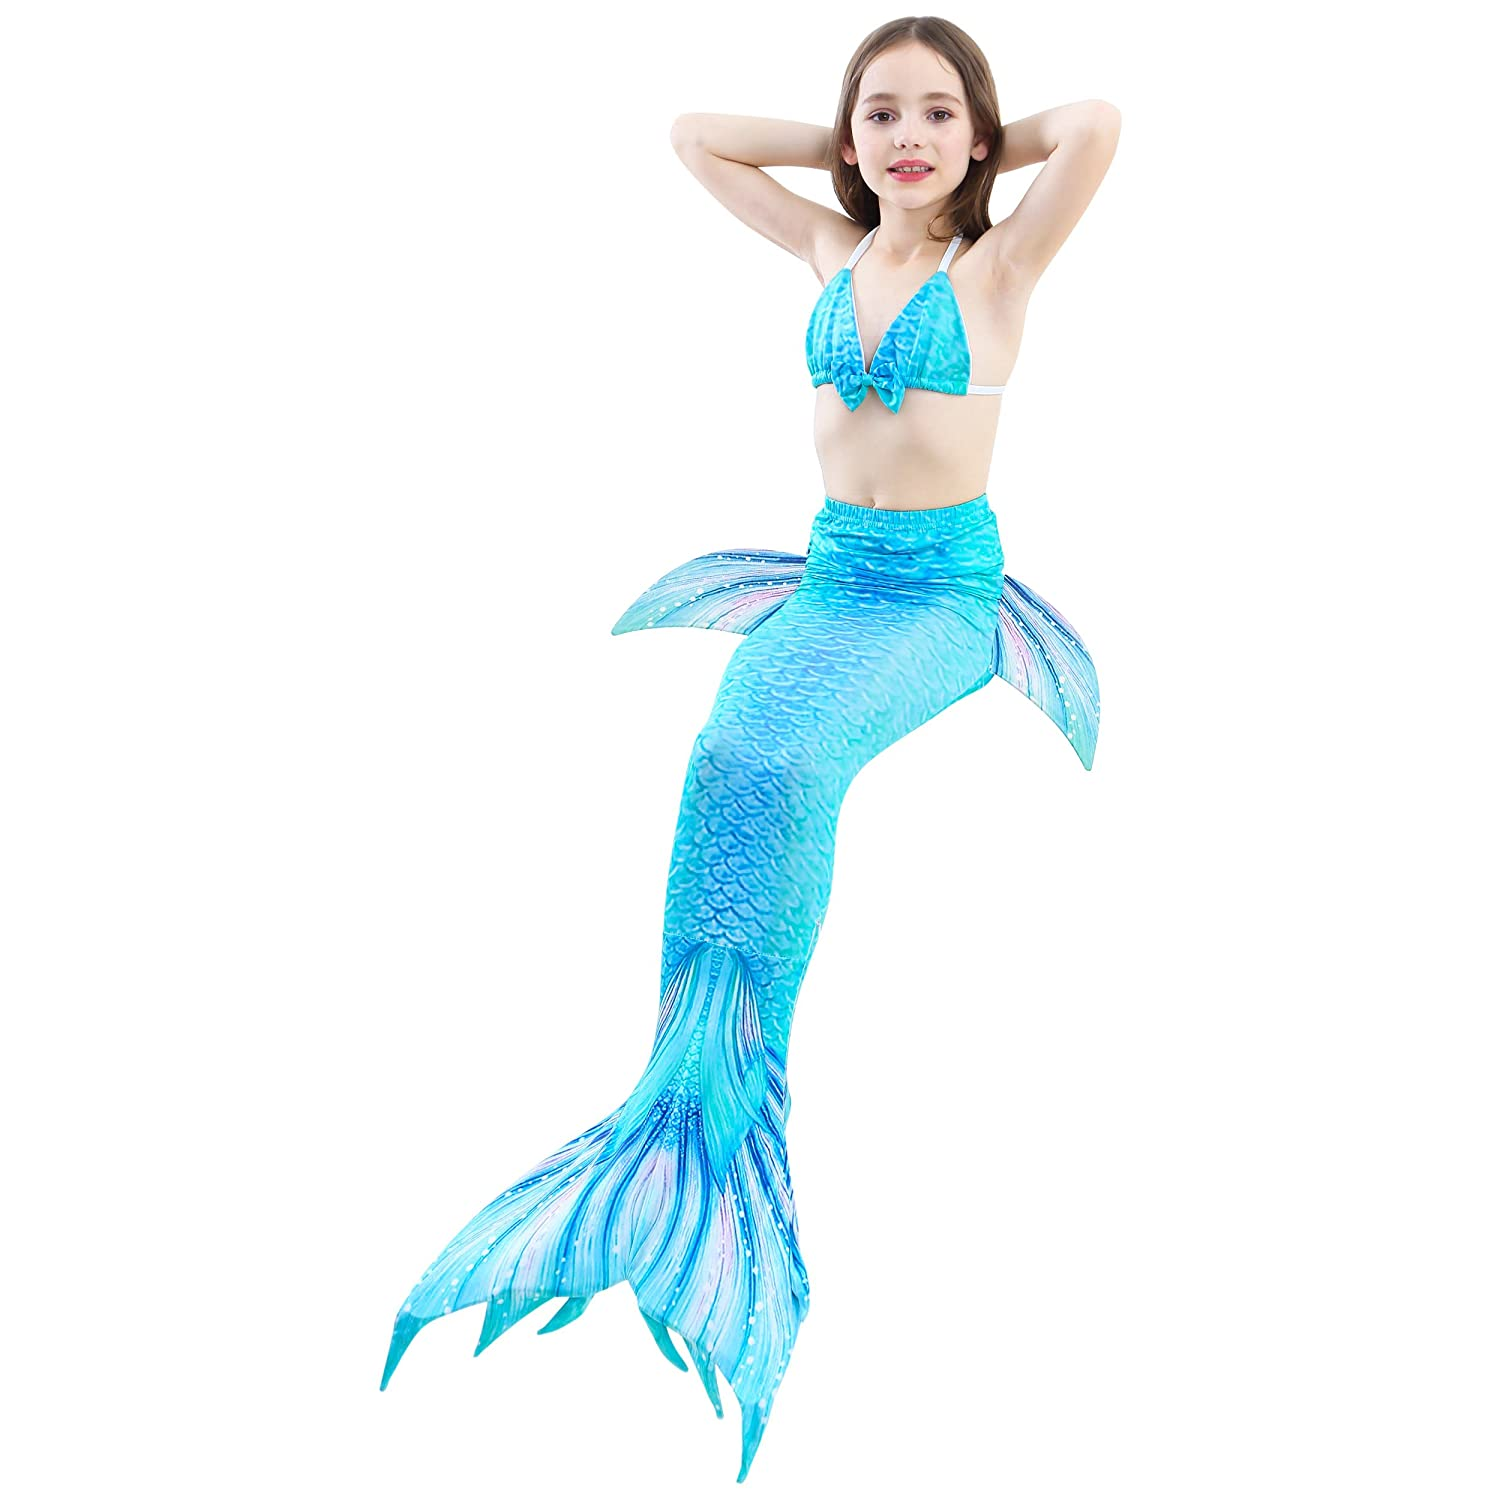 821d8709aea7e AMENON 4PCs Girls Mermaid Tails Swimsuits for Swimming Toddler Big Girl  Bikini Set